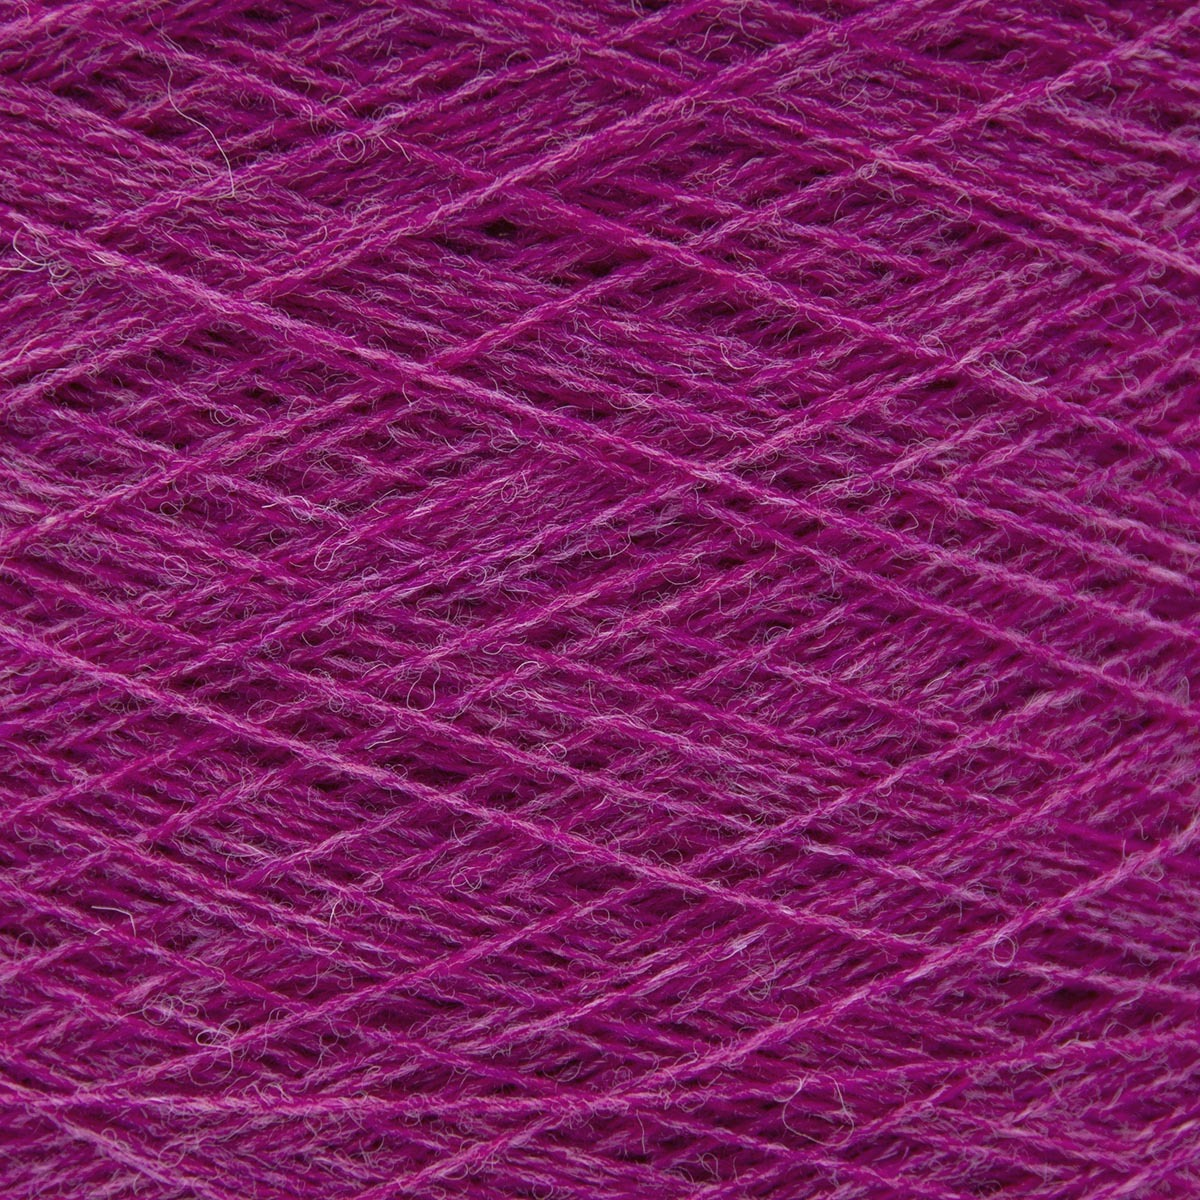 Knoll Yarns Supersoft - 290